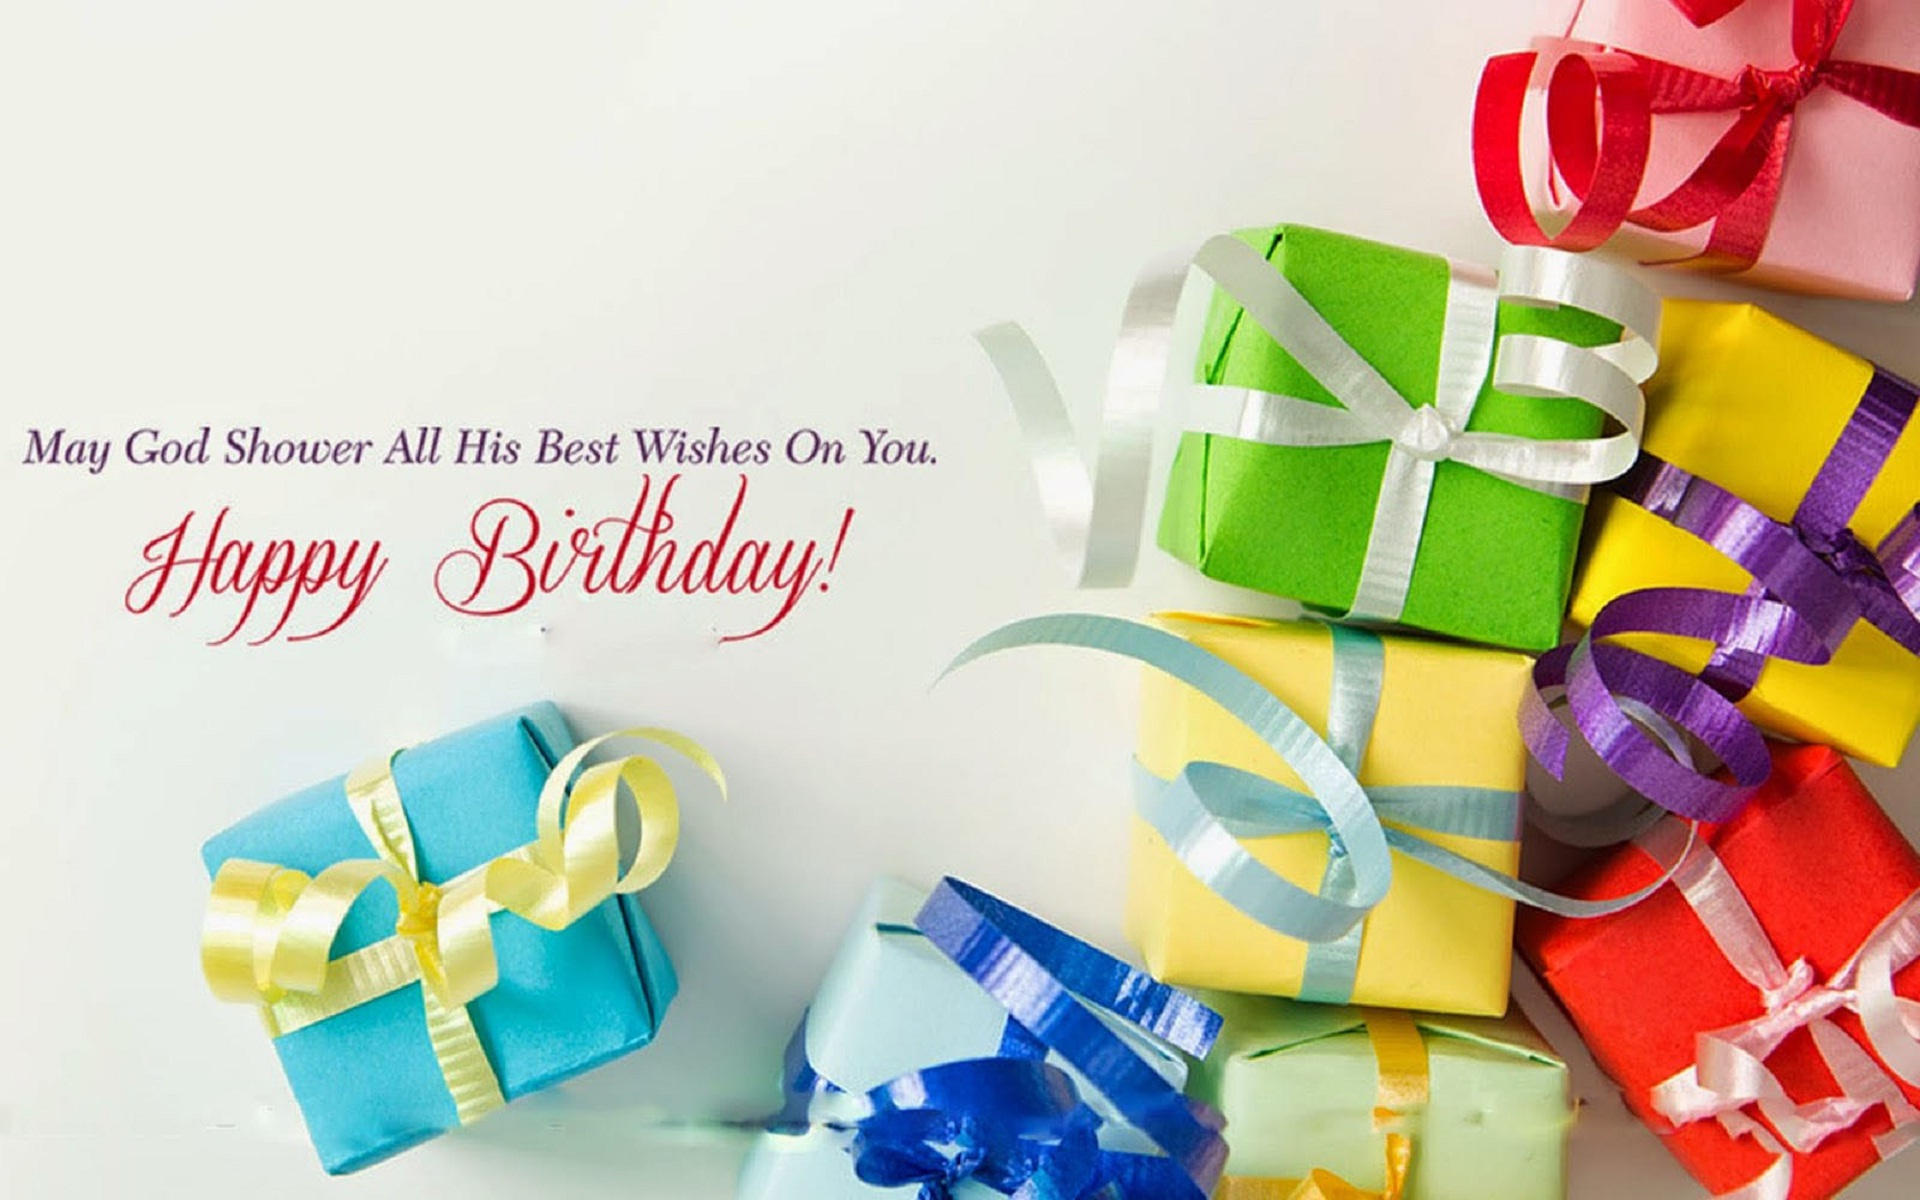 wallpaper happy birthday to you ; Happy-birthday-lot-of-gift-for-you-wallpapers